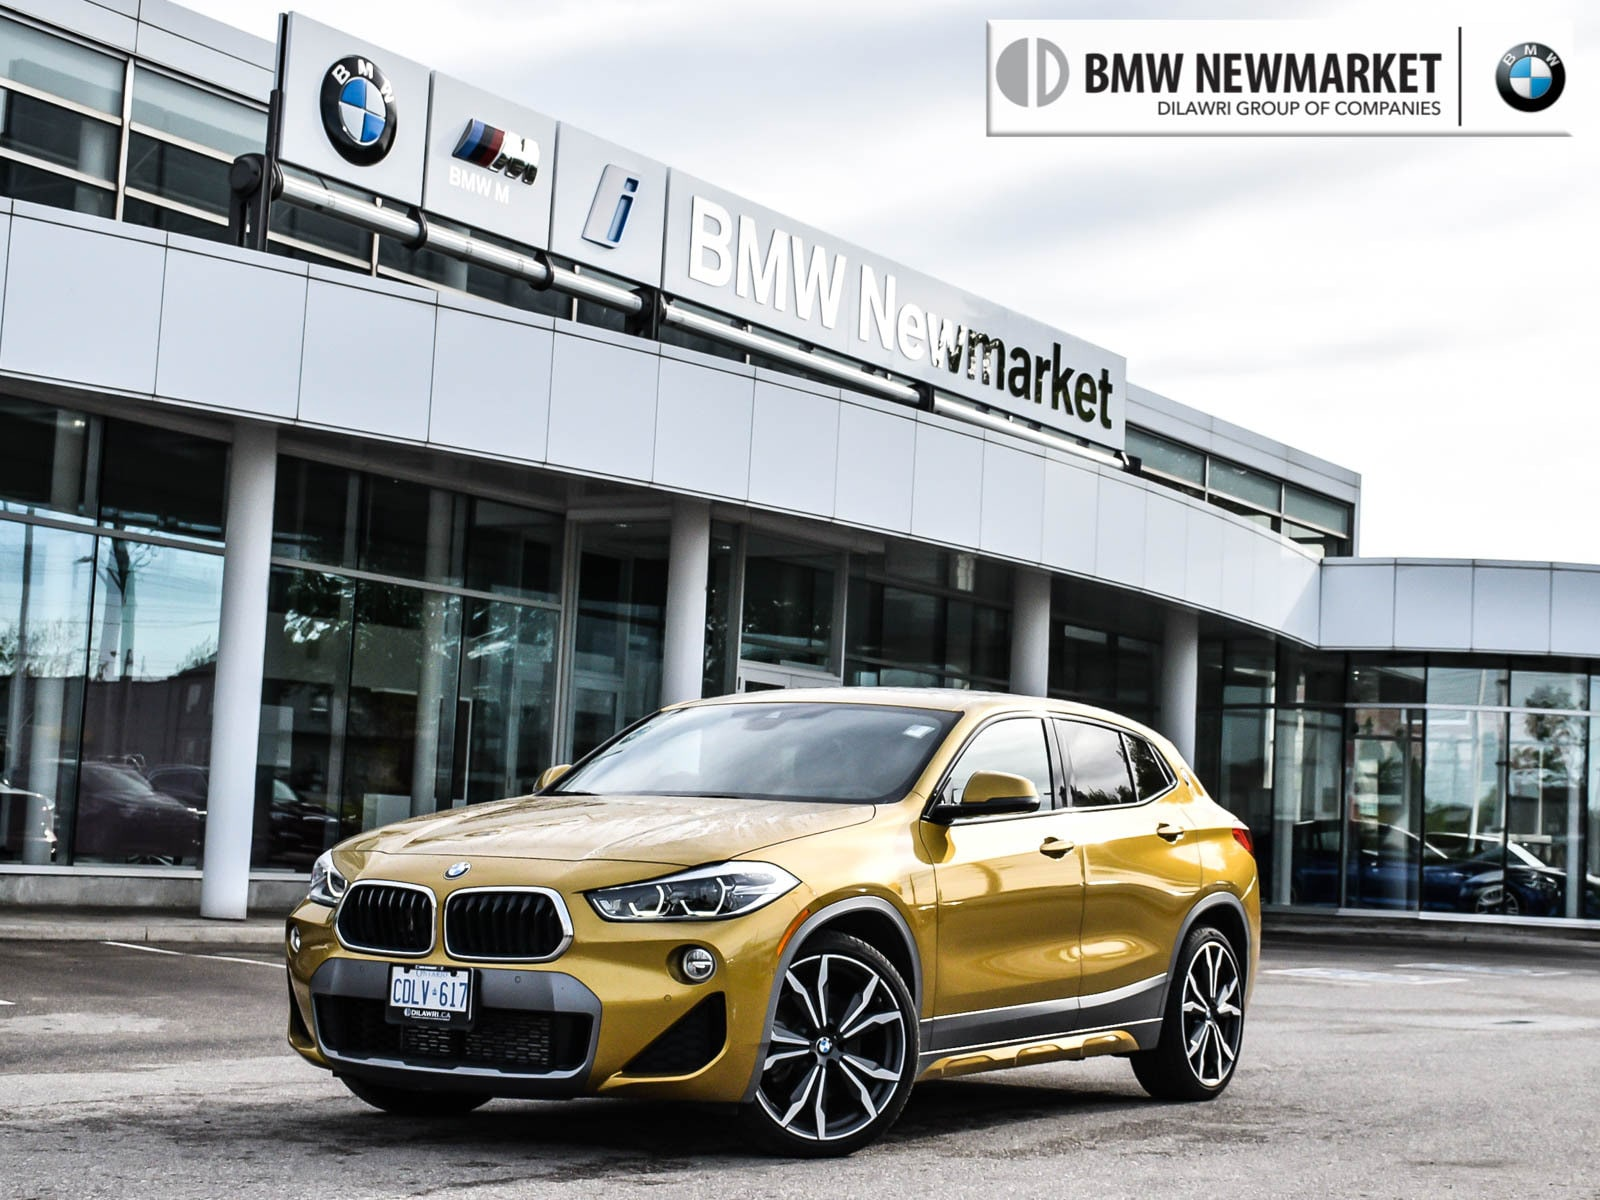 2018 BMW X2 xDrive 28i CLEARANCE PRICE!! LEASE PROGRAM ENDS MA